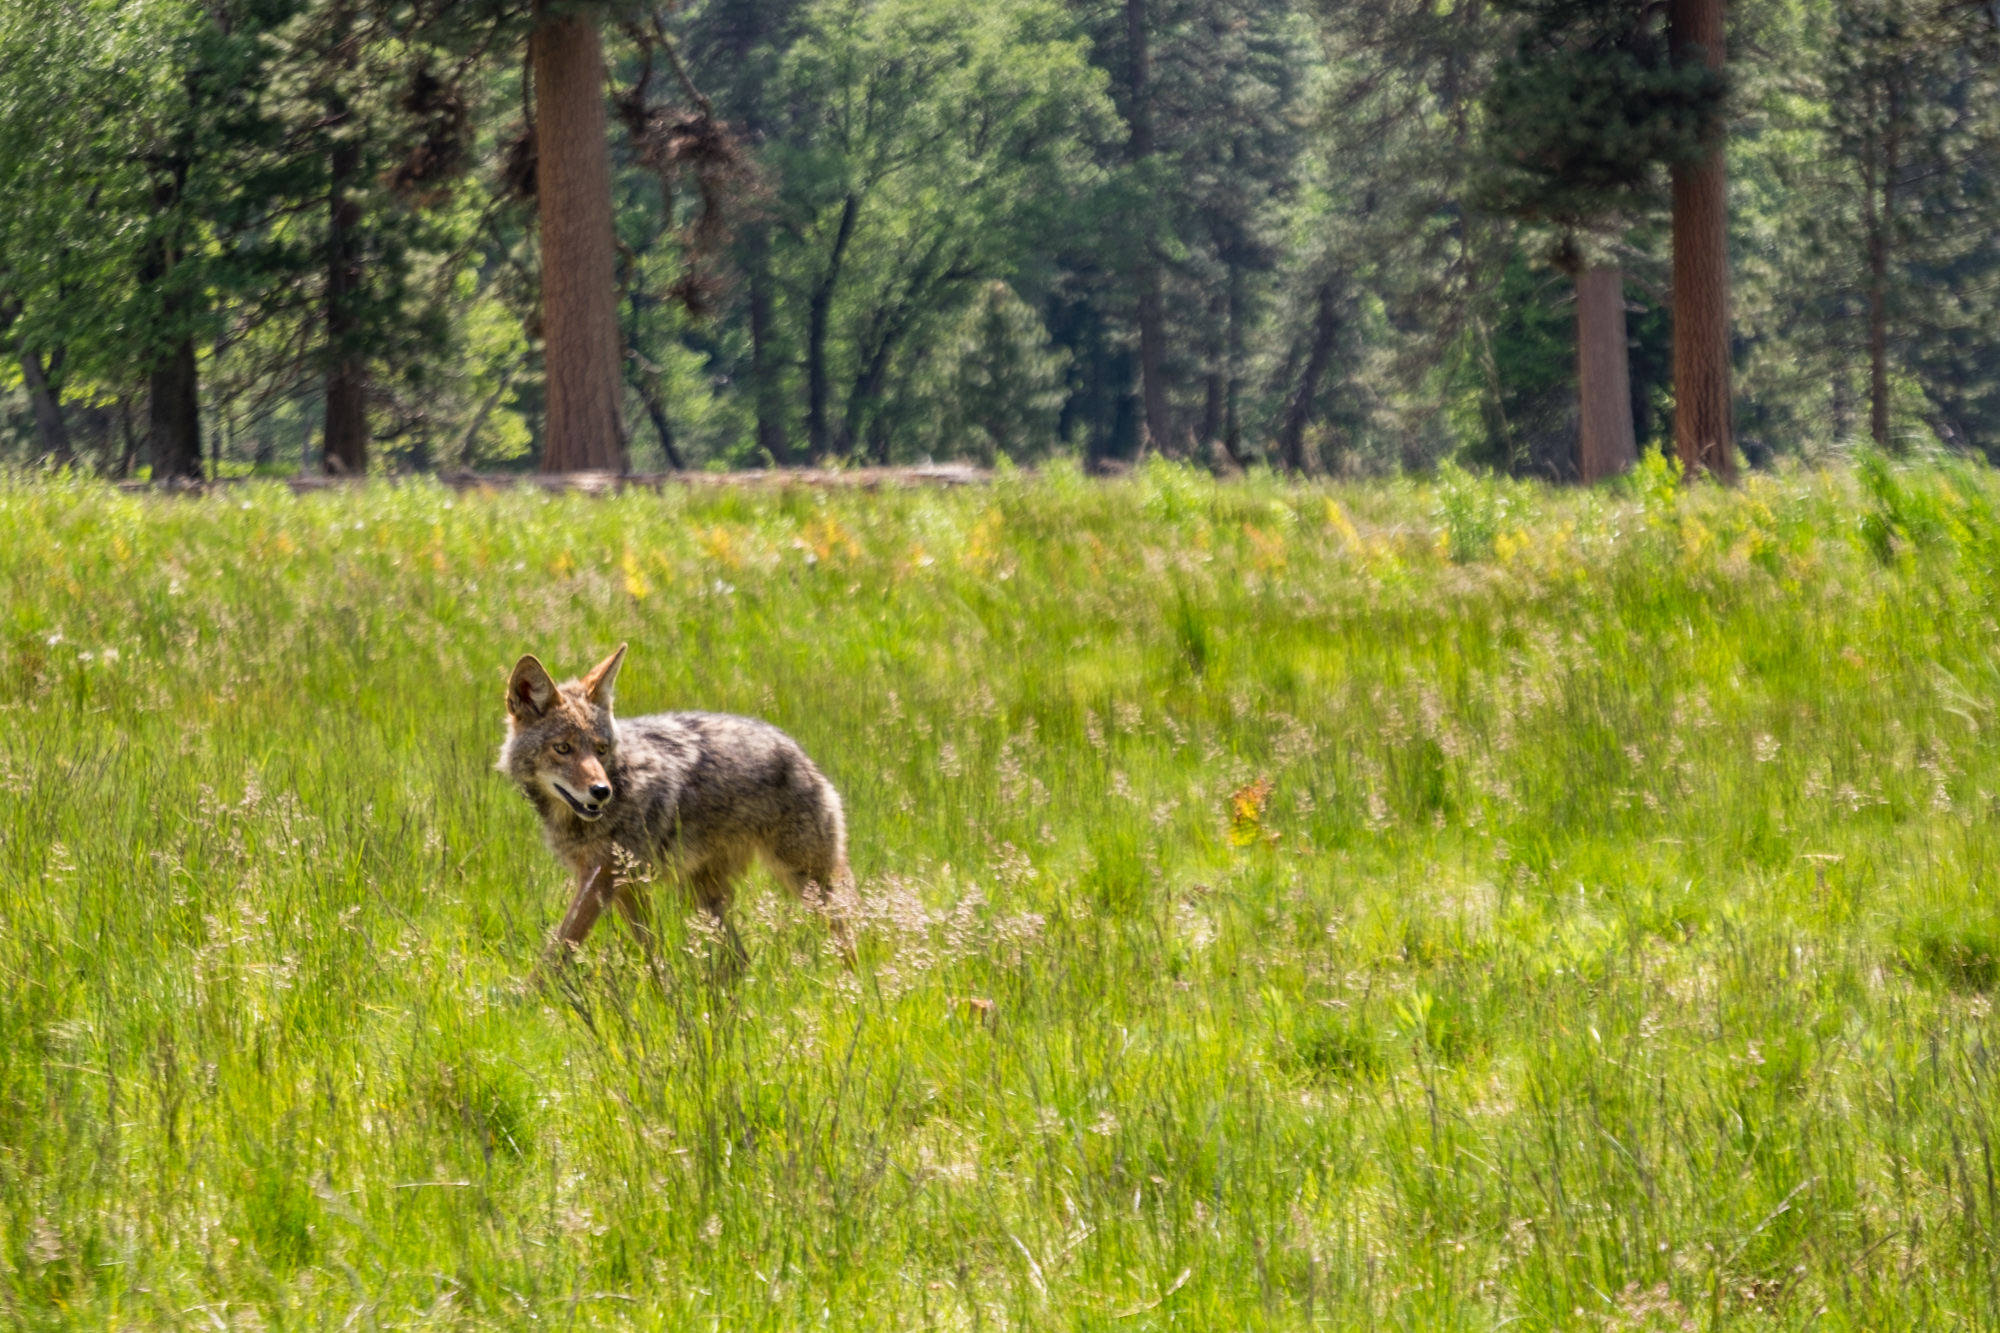 A coyote came out to play one afternoon.